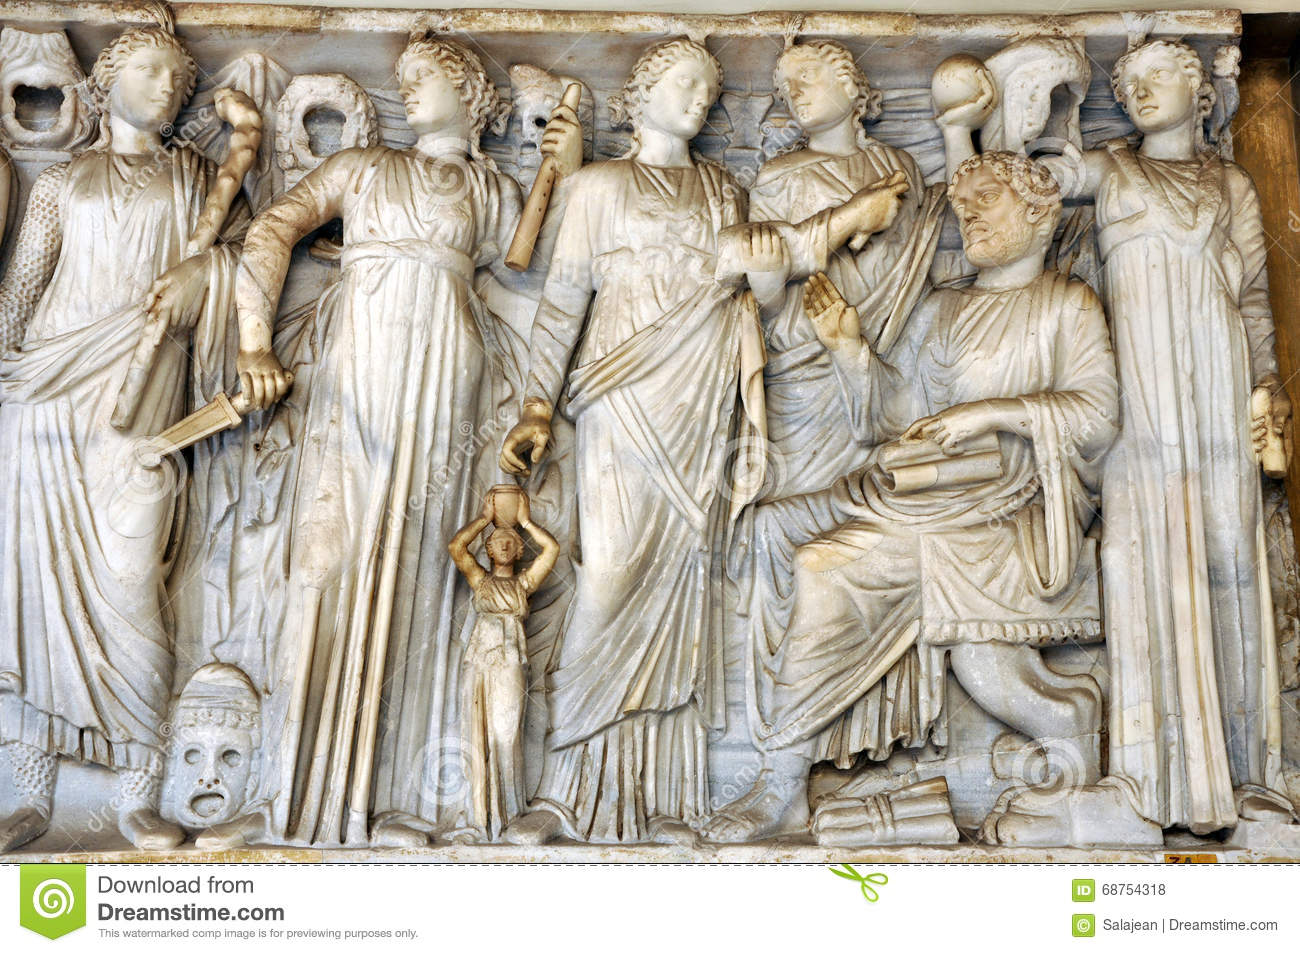 a description of the romans as collectors and admirers of greek art Romans were collectors and admirers of greek art art from greece was brought to rome, copied, and also changed by the romans as a result, roman art is.